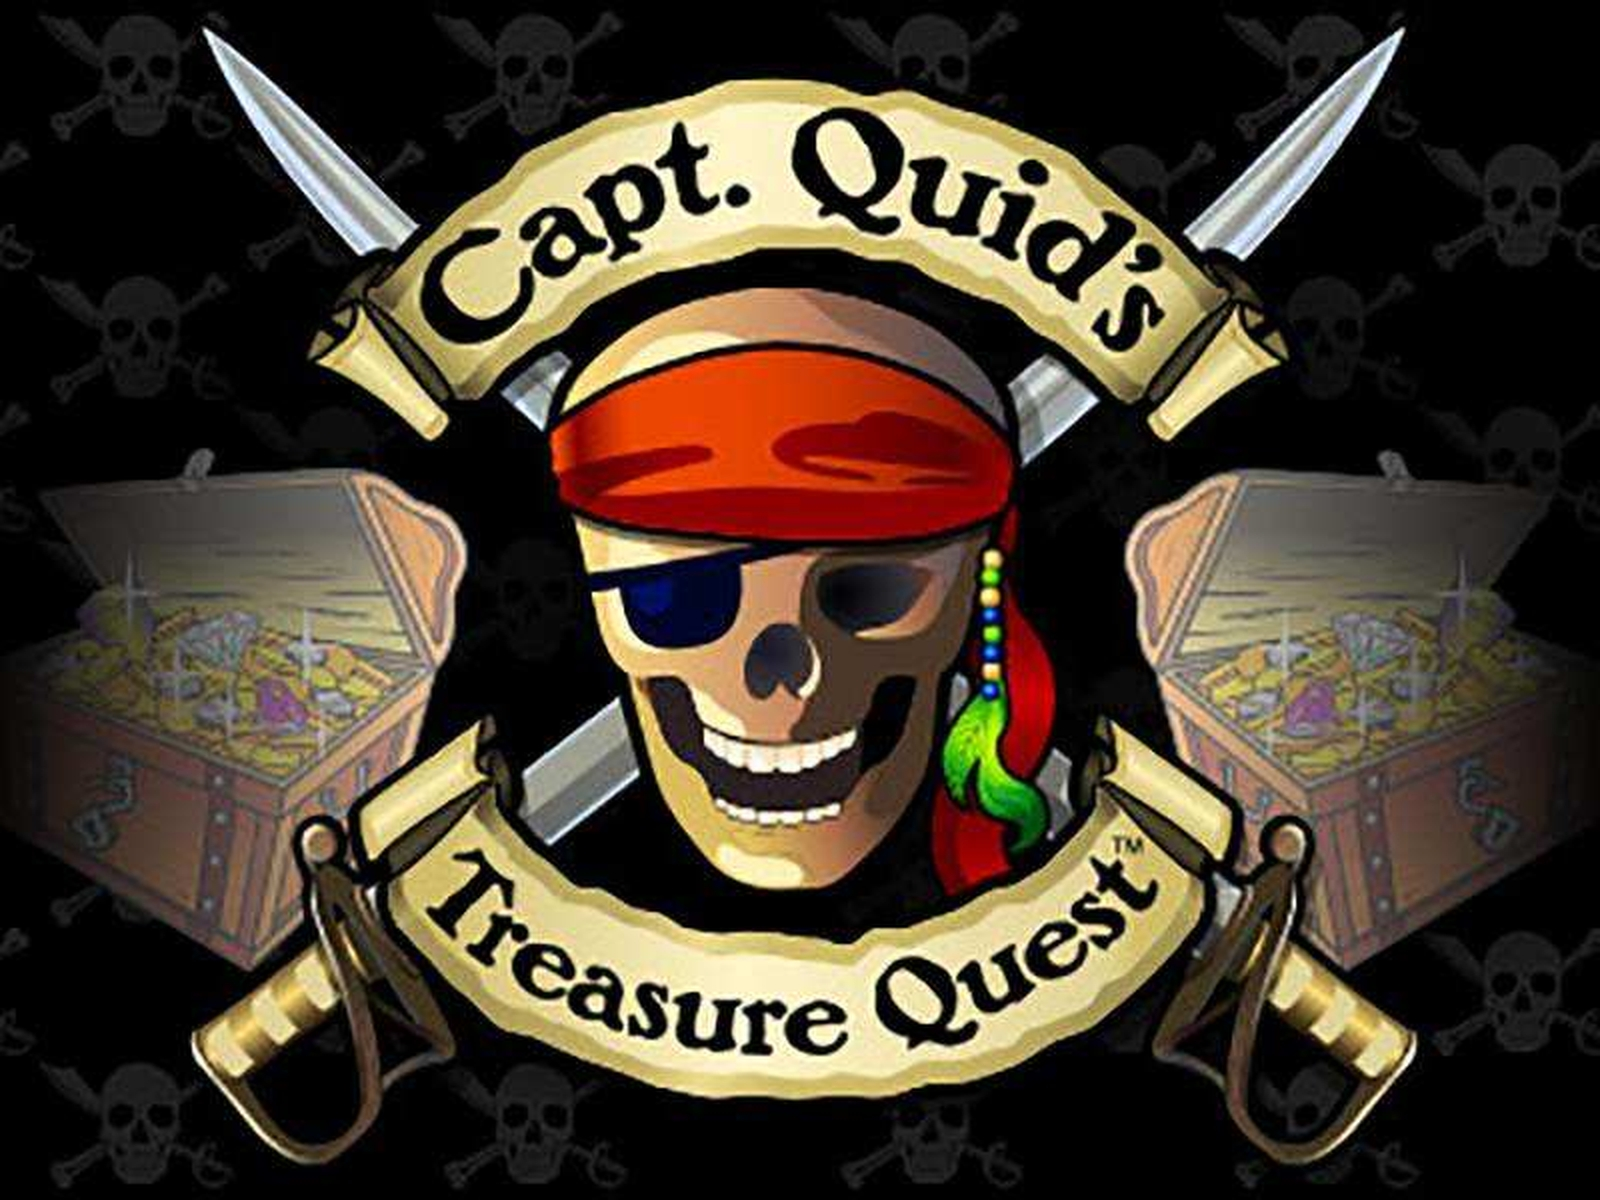 The Captain Quids Treasure Quest Online Slot Demo Game by IGT